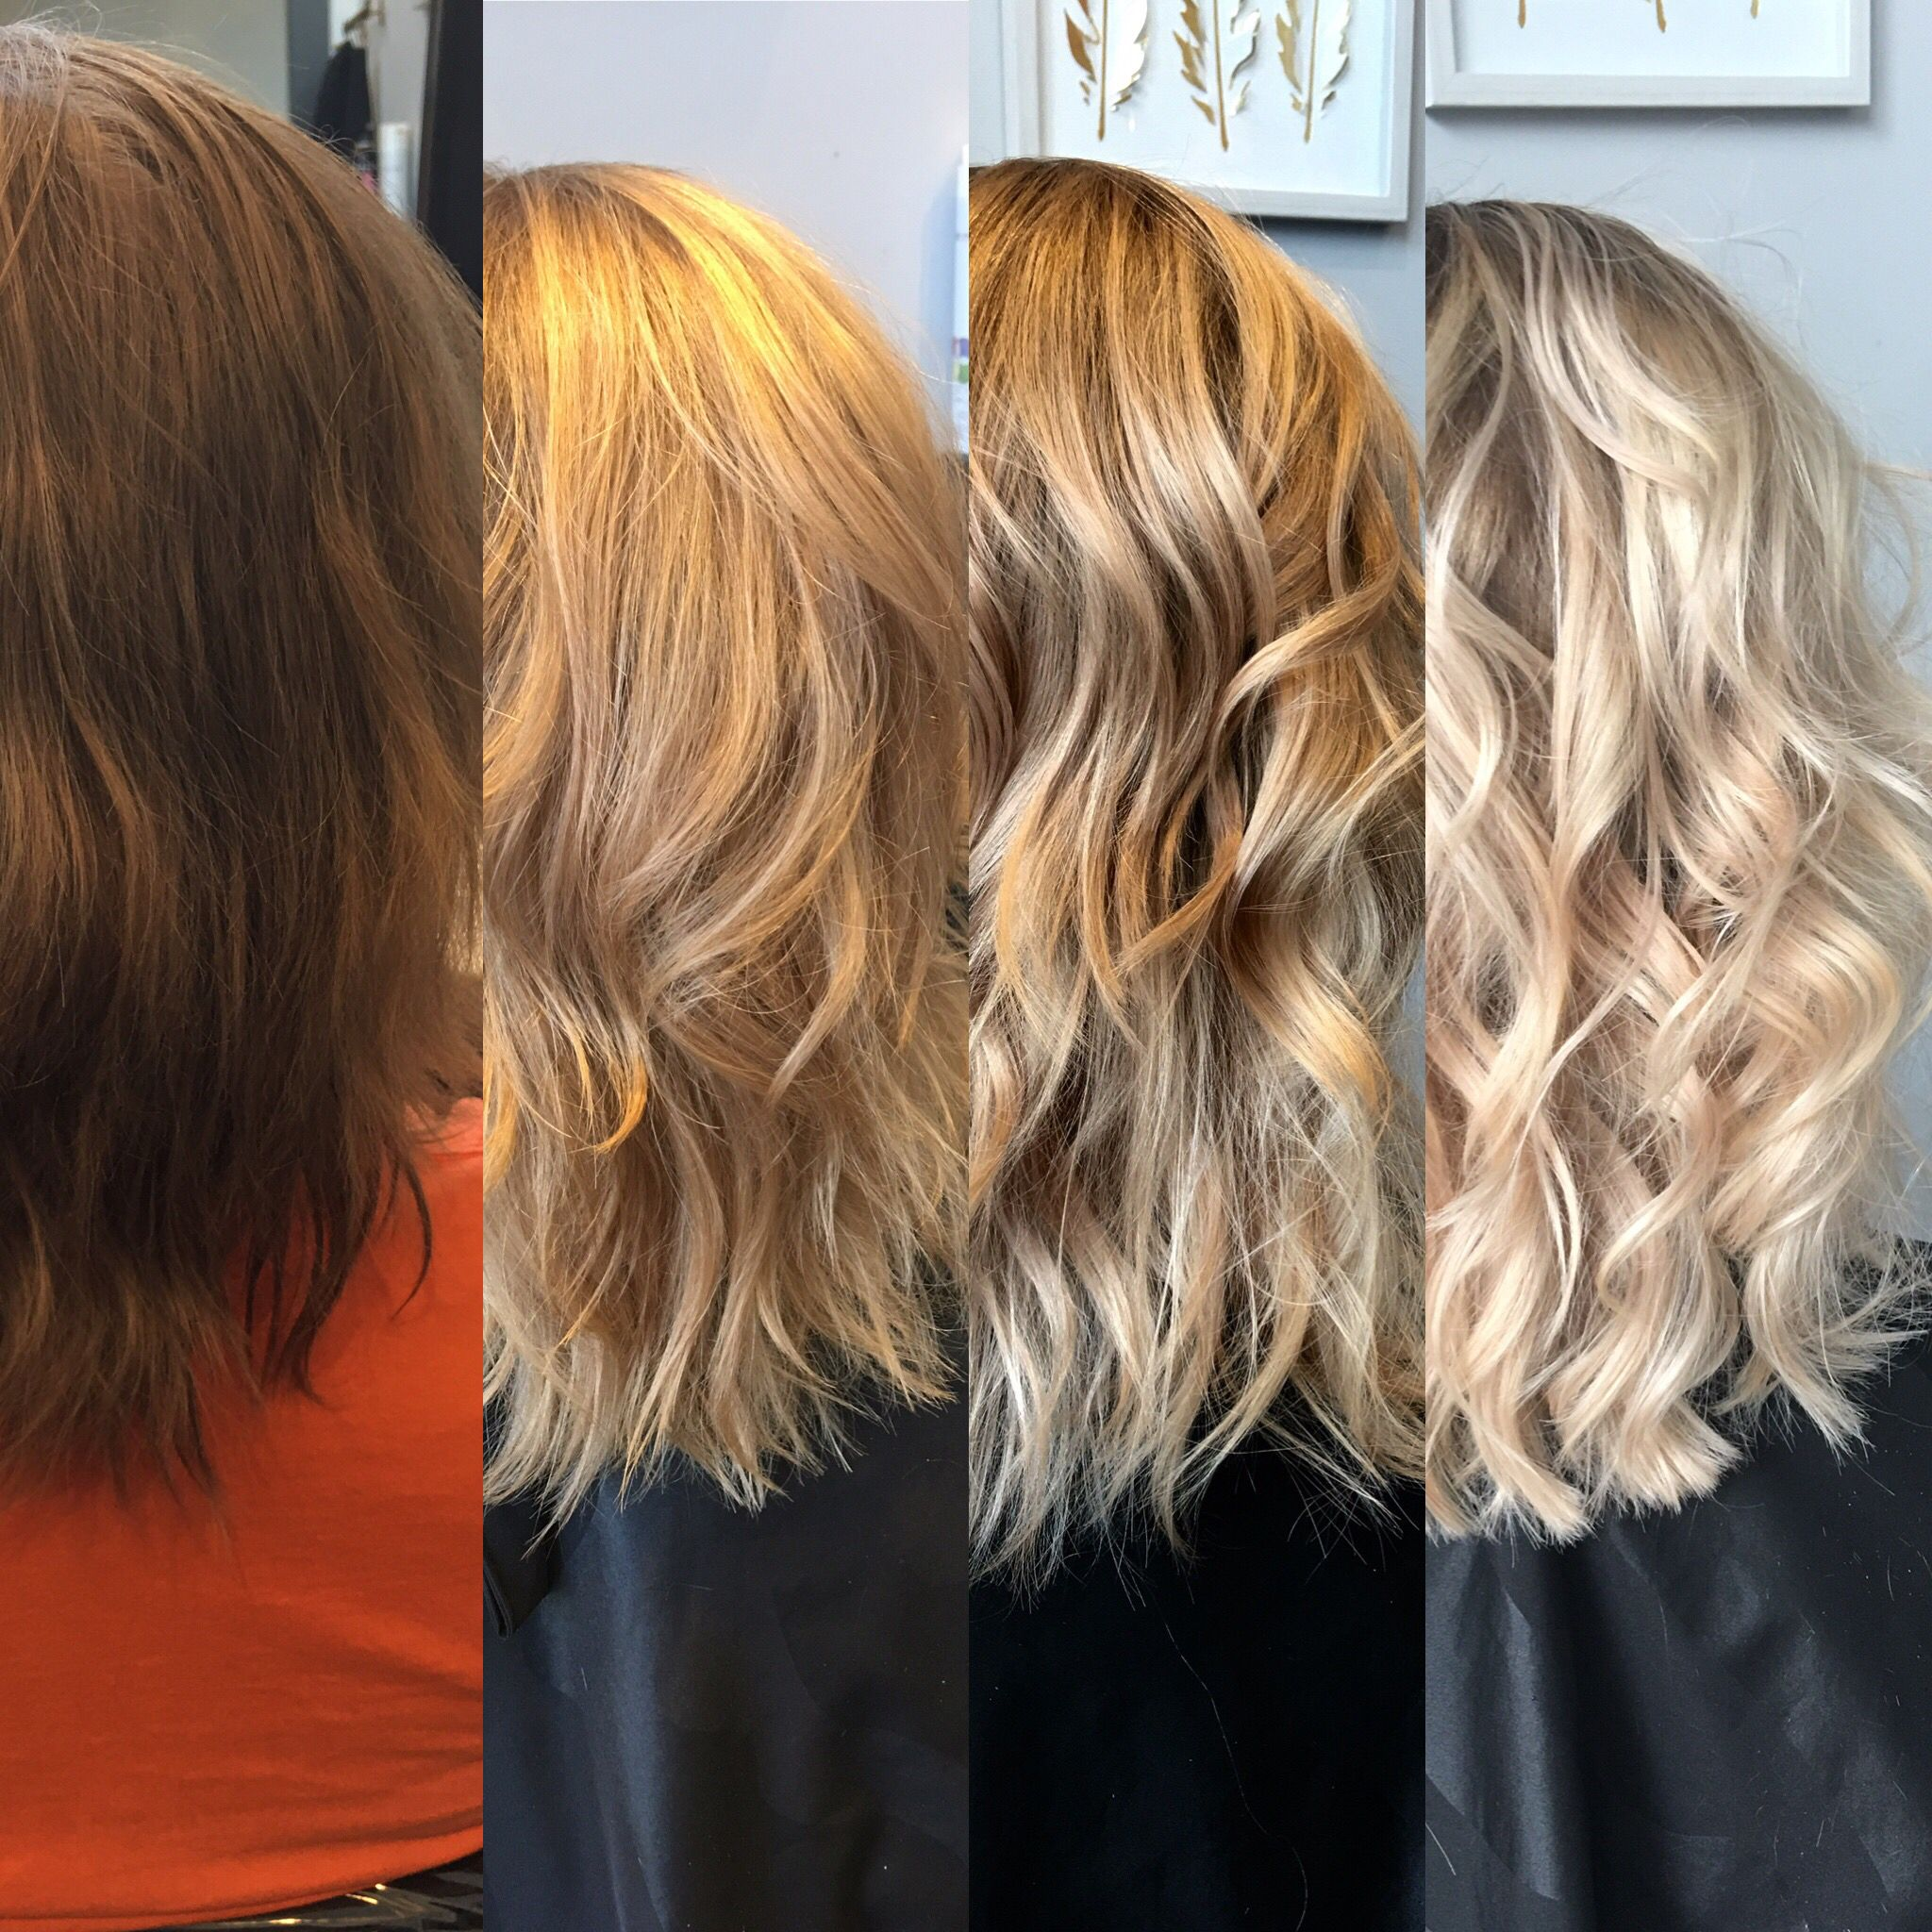 The Process Of Dark To Blonde Before And After Lkhairstudios Brunette To Blonde Dark To Light Hair Red Blonde Hair